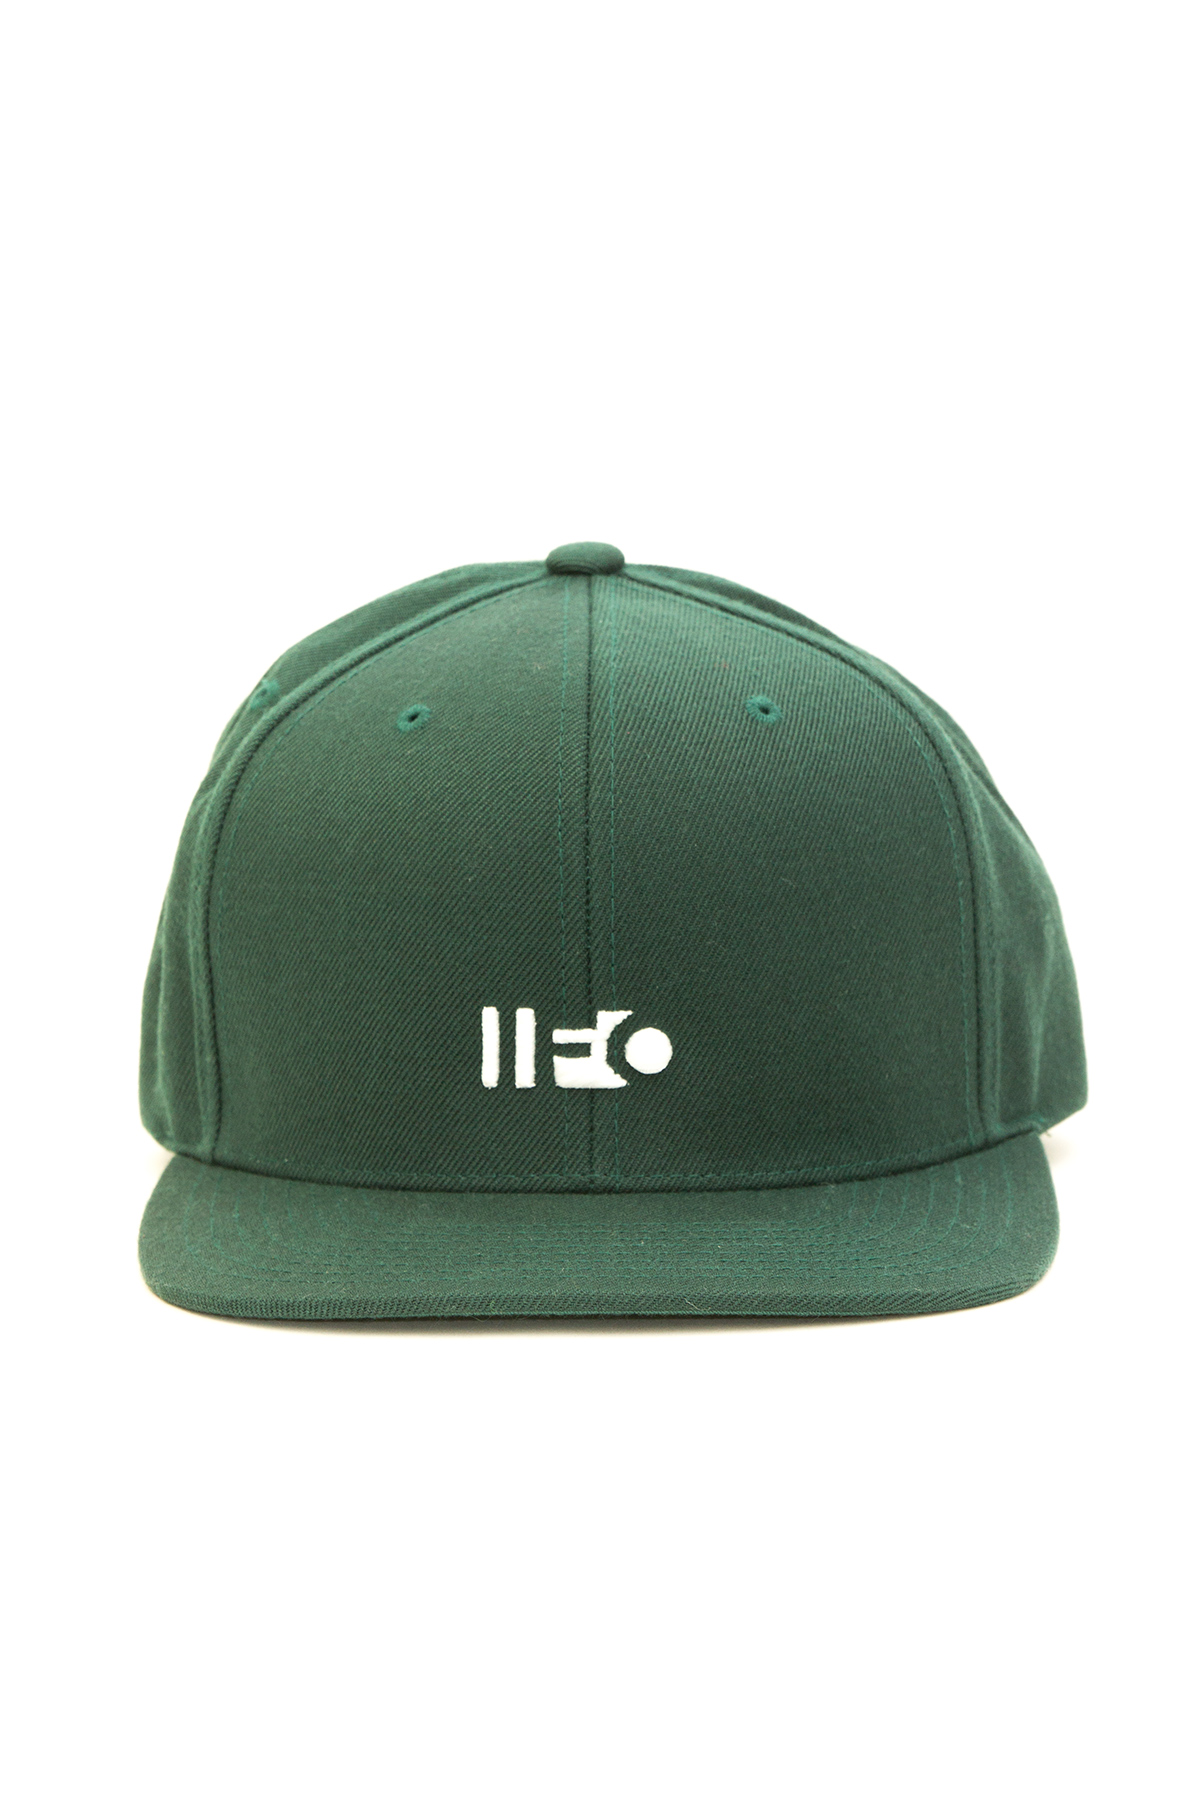 CUTOUT-LOGO-SNAPBACK-green_shop1